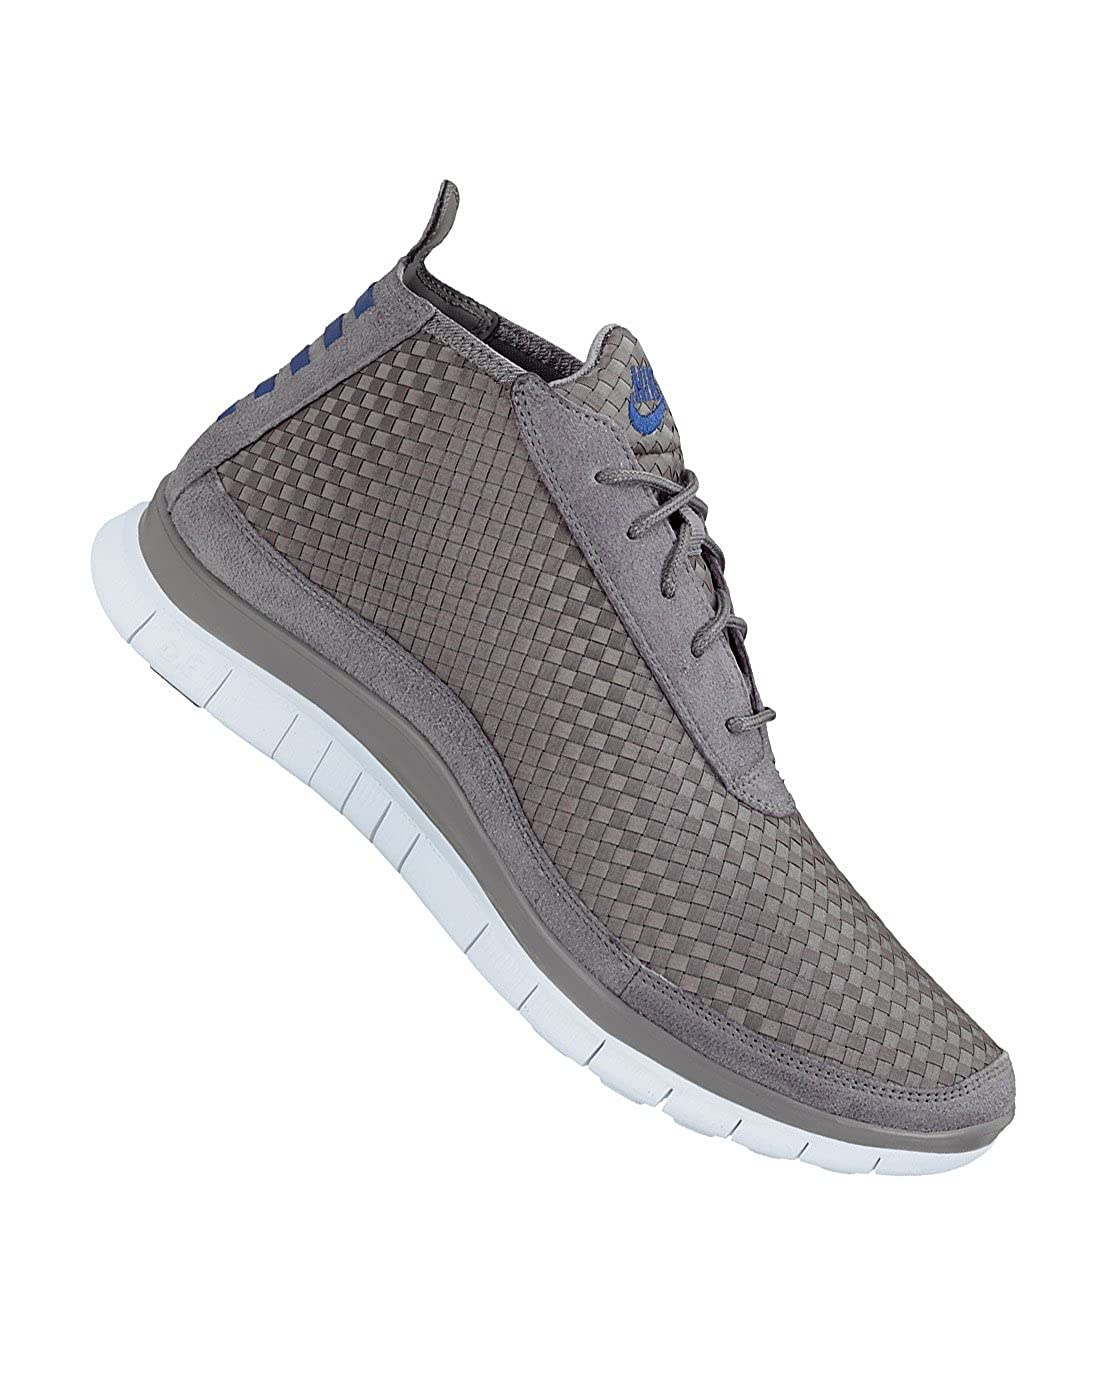 Nike Free Chukka Woven Men Shoes 574264-041-Size-8 UK  Buy Online at Low  Prices in India - Amazon.in 0fdafcf16